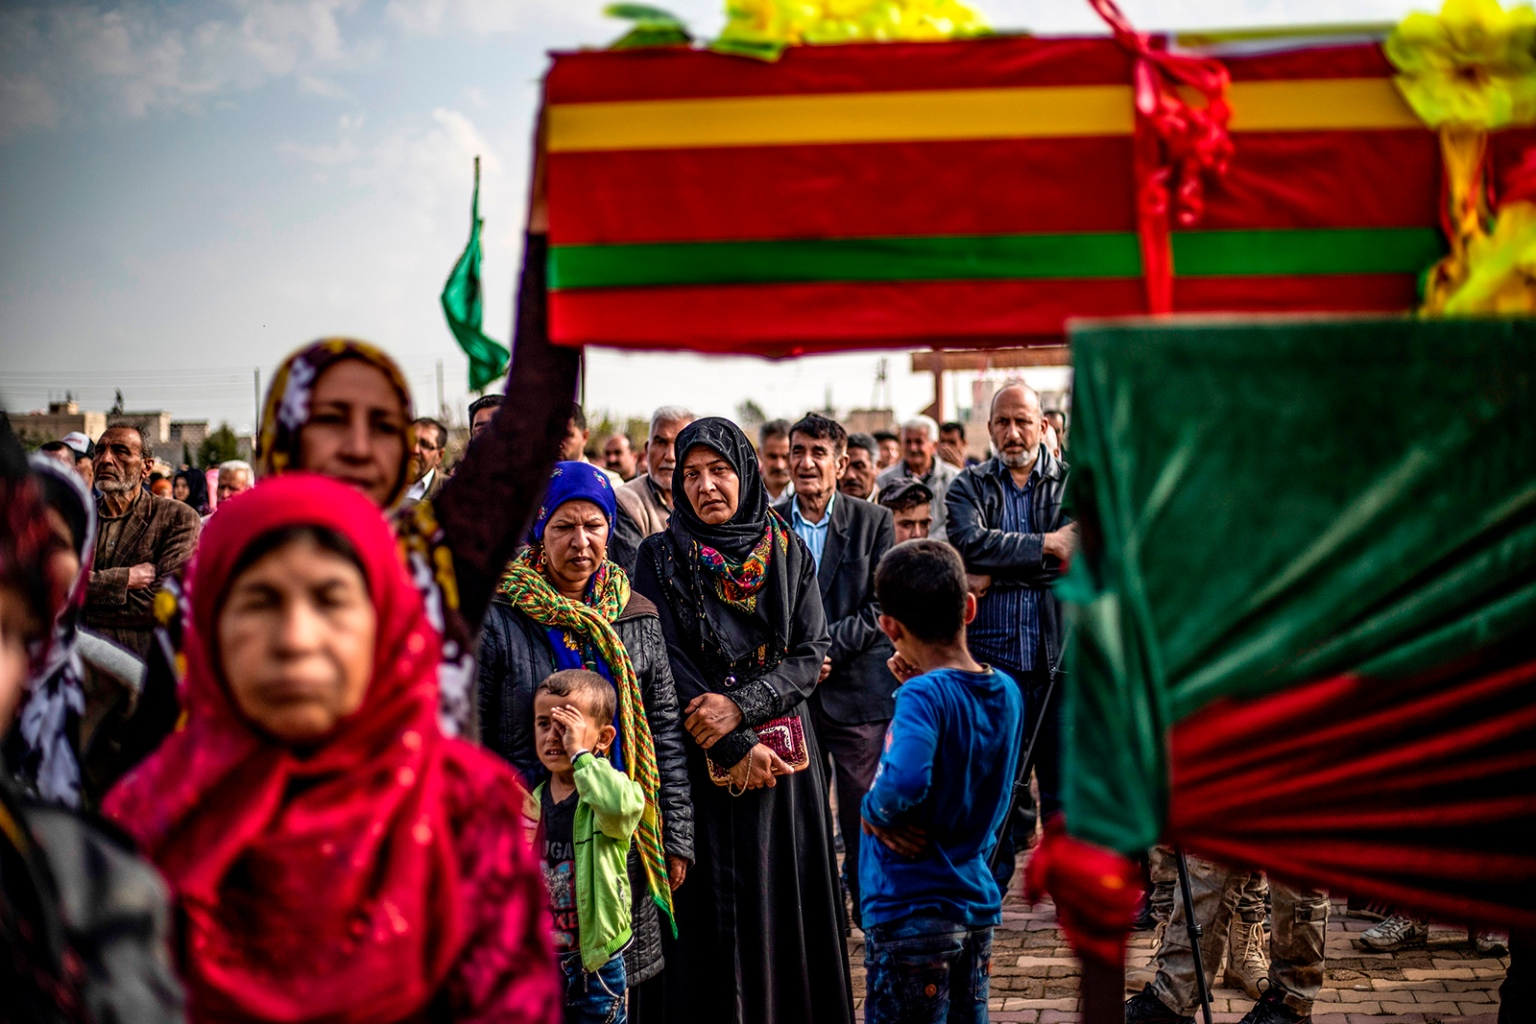 Relatives mourn by the coffin of an Arab fighter in the Kurdish-led Syrian Democratic Forces, who was killed in the eastern Deir Ezzor province, during his funeral in Qamishli, northeastern Syria, on April 10. DELIL SOULEIMAN/AFP/Getty Images